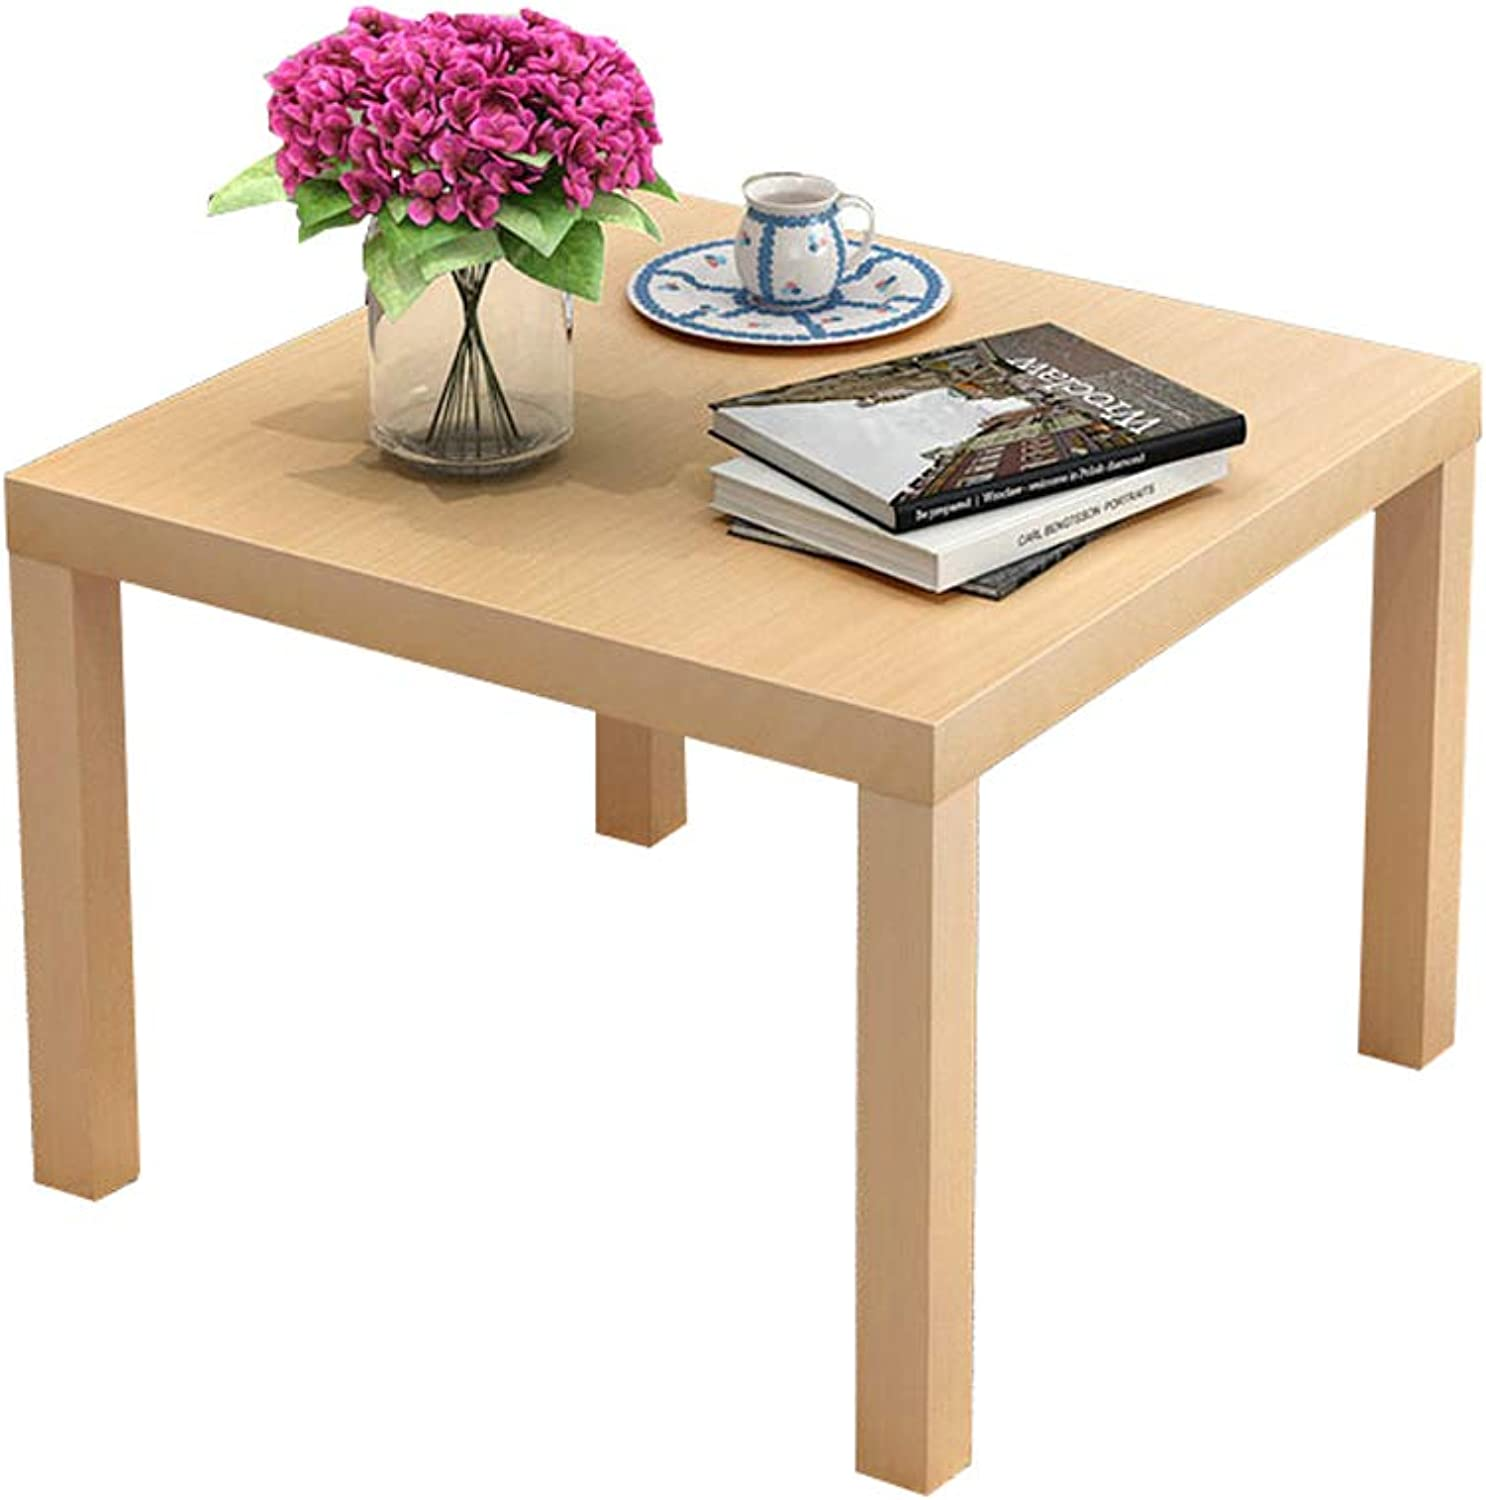 Coffee Table, Nordic Square Table Modern Minimalist Living Room Tea Table Creative Furniture Tea Table Multifunctional Coffee Table (Size   40  37cm)